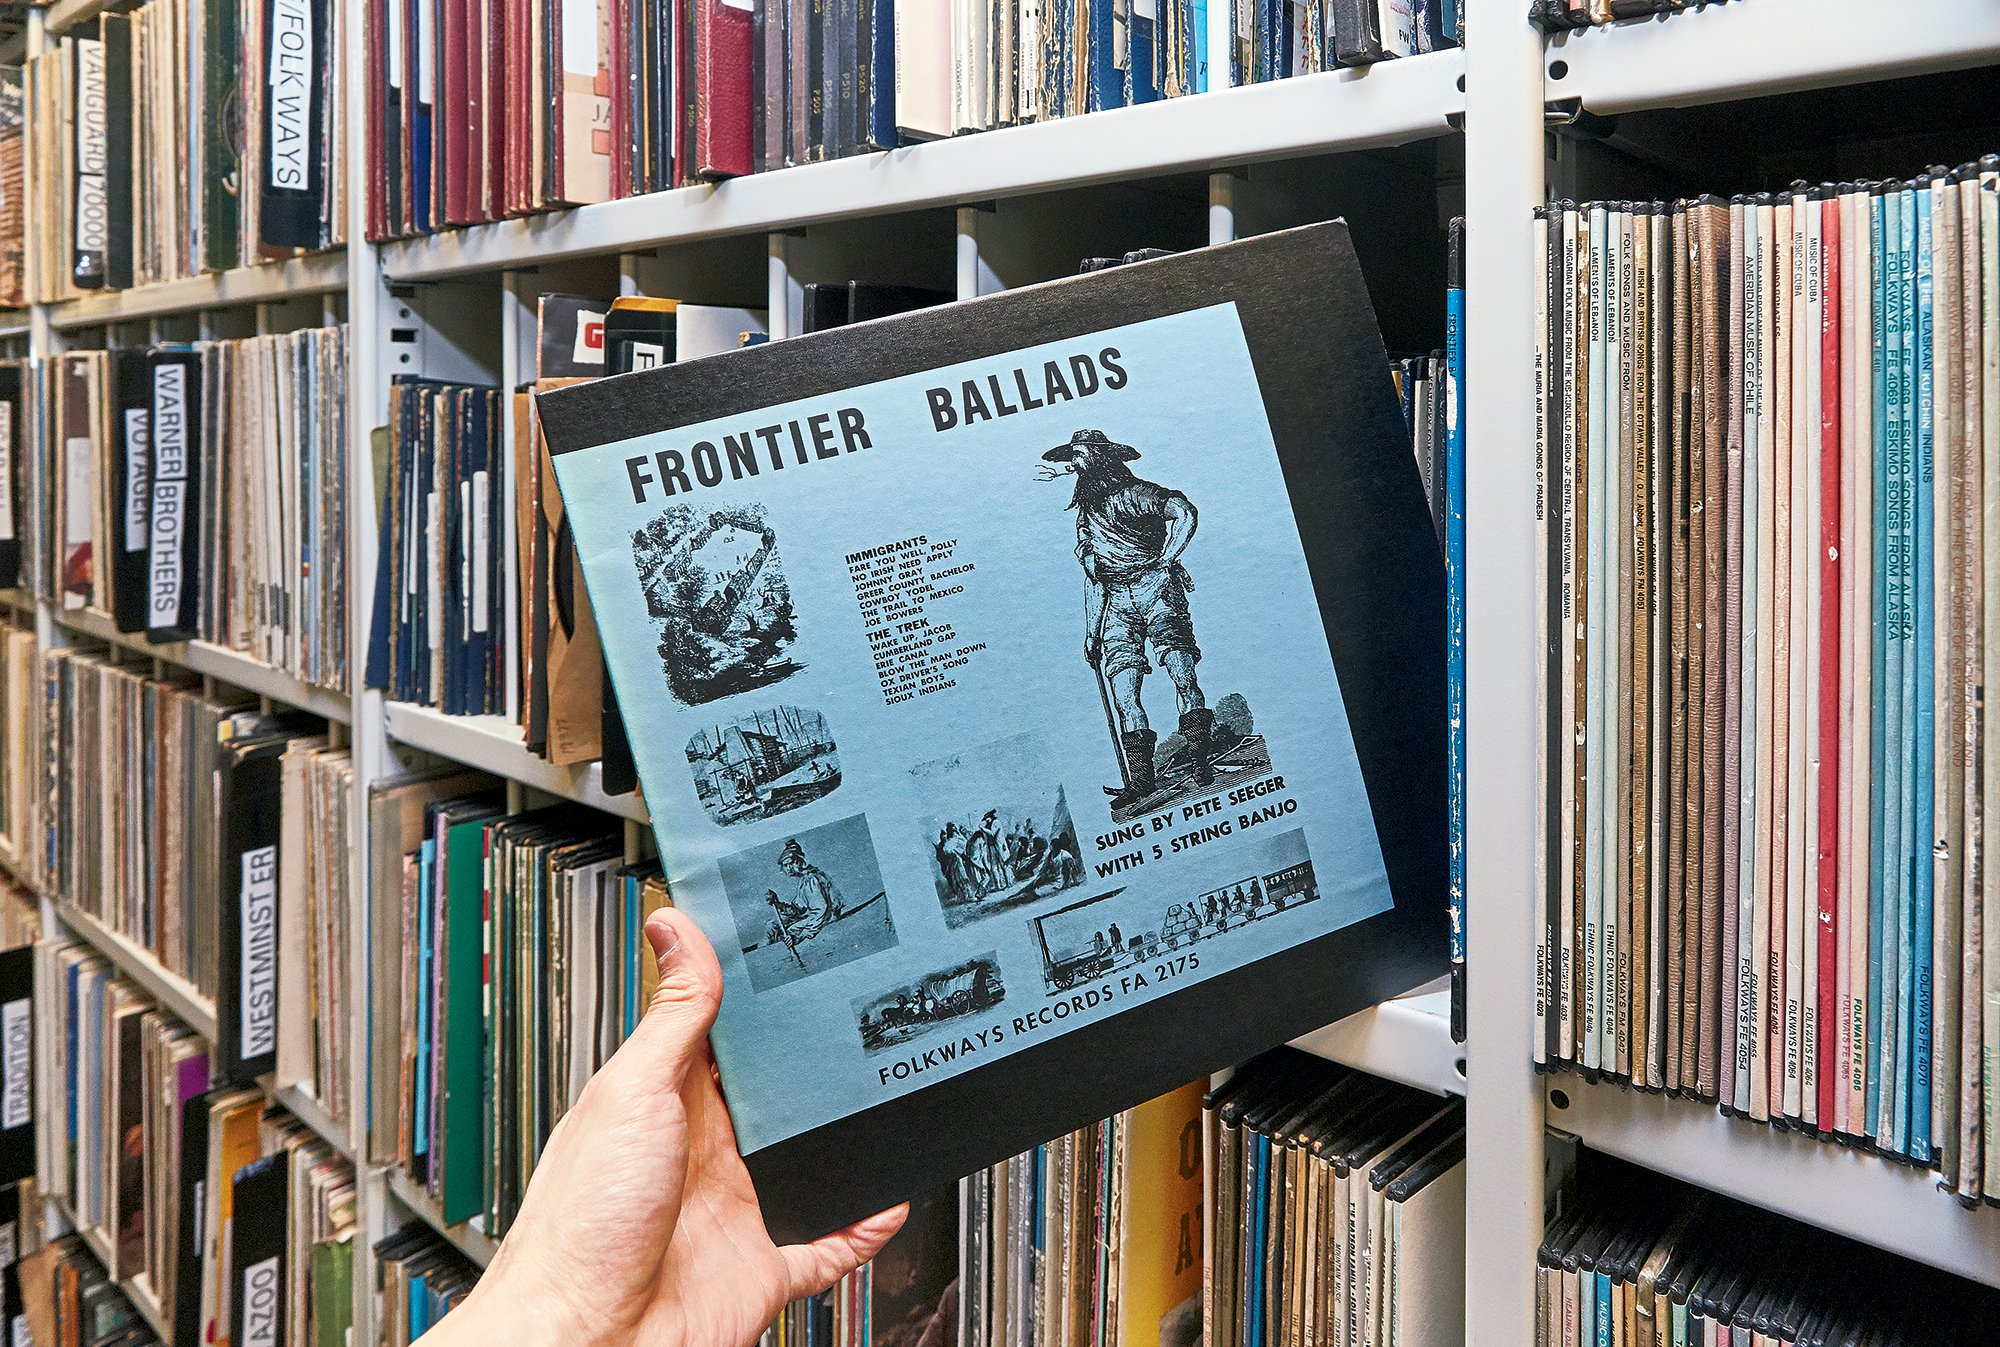 The Folkways archive contains more than 13,000 albums, along with lots of other music treasures. Photograph by Jeff Elkins.